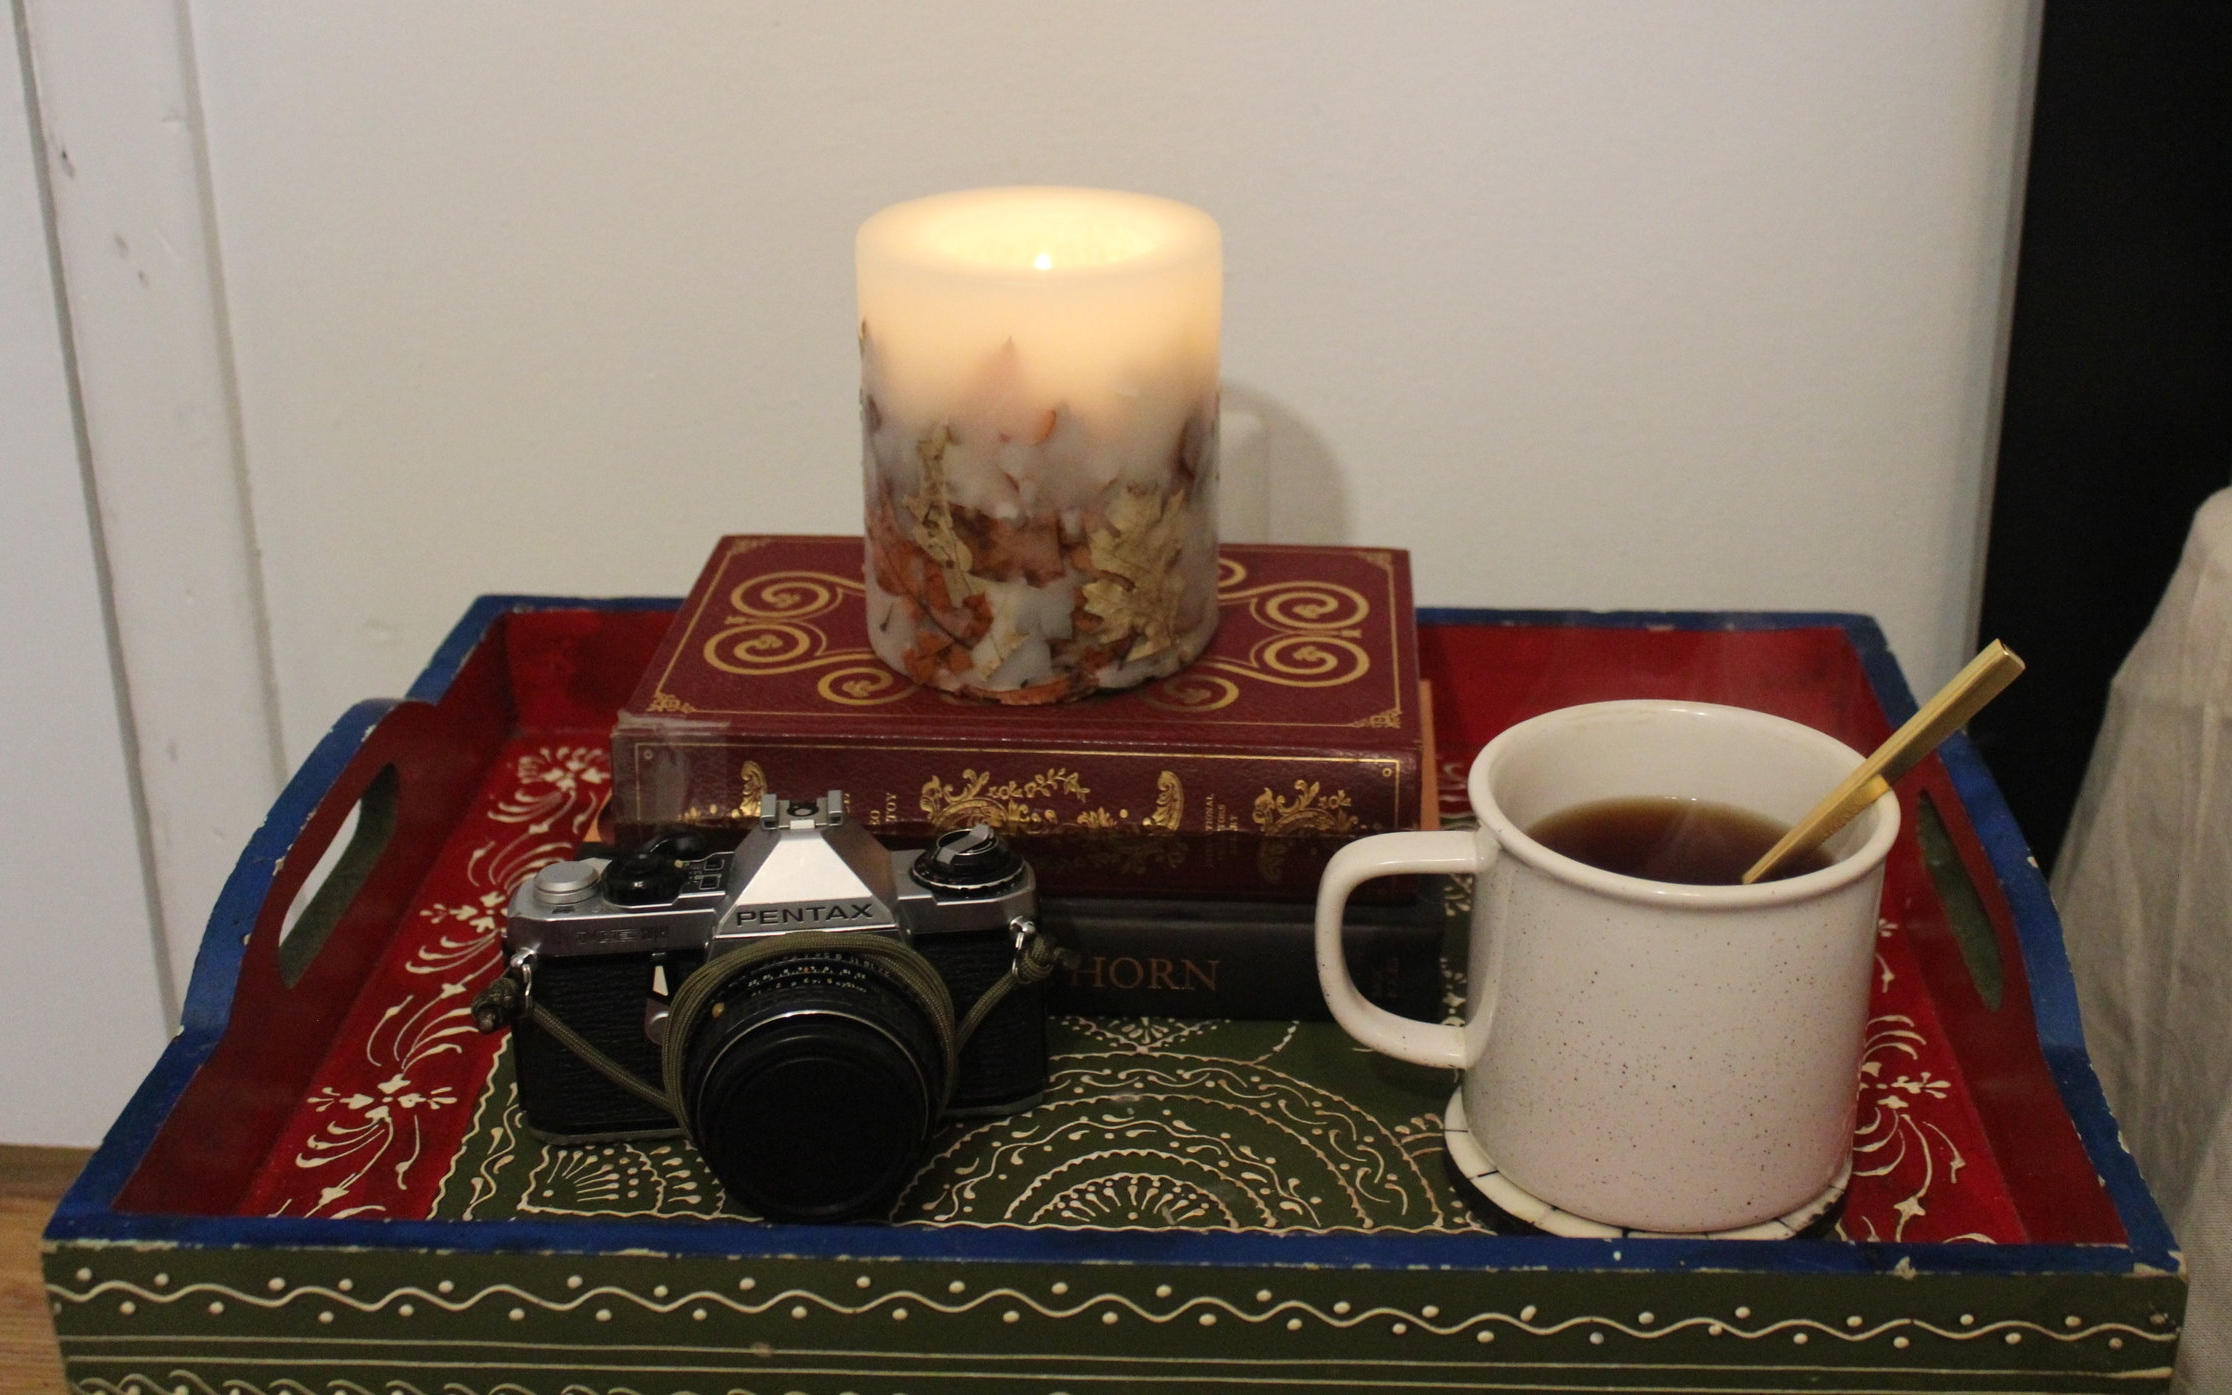 FALL - A harvest spice candle with leaves in it combined with a mug of warm tea on this bedside table emmulates fall and invites you to cozy up in bed.